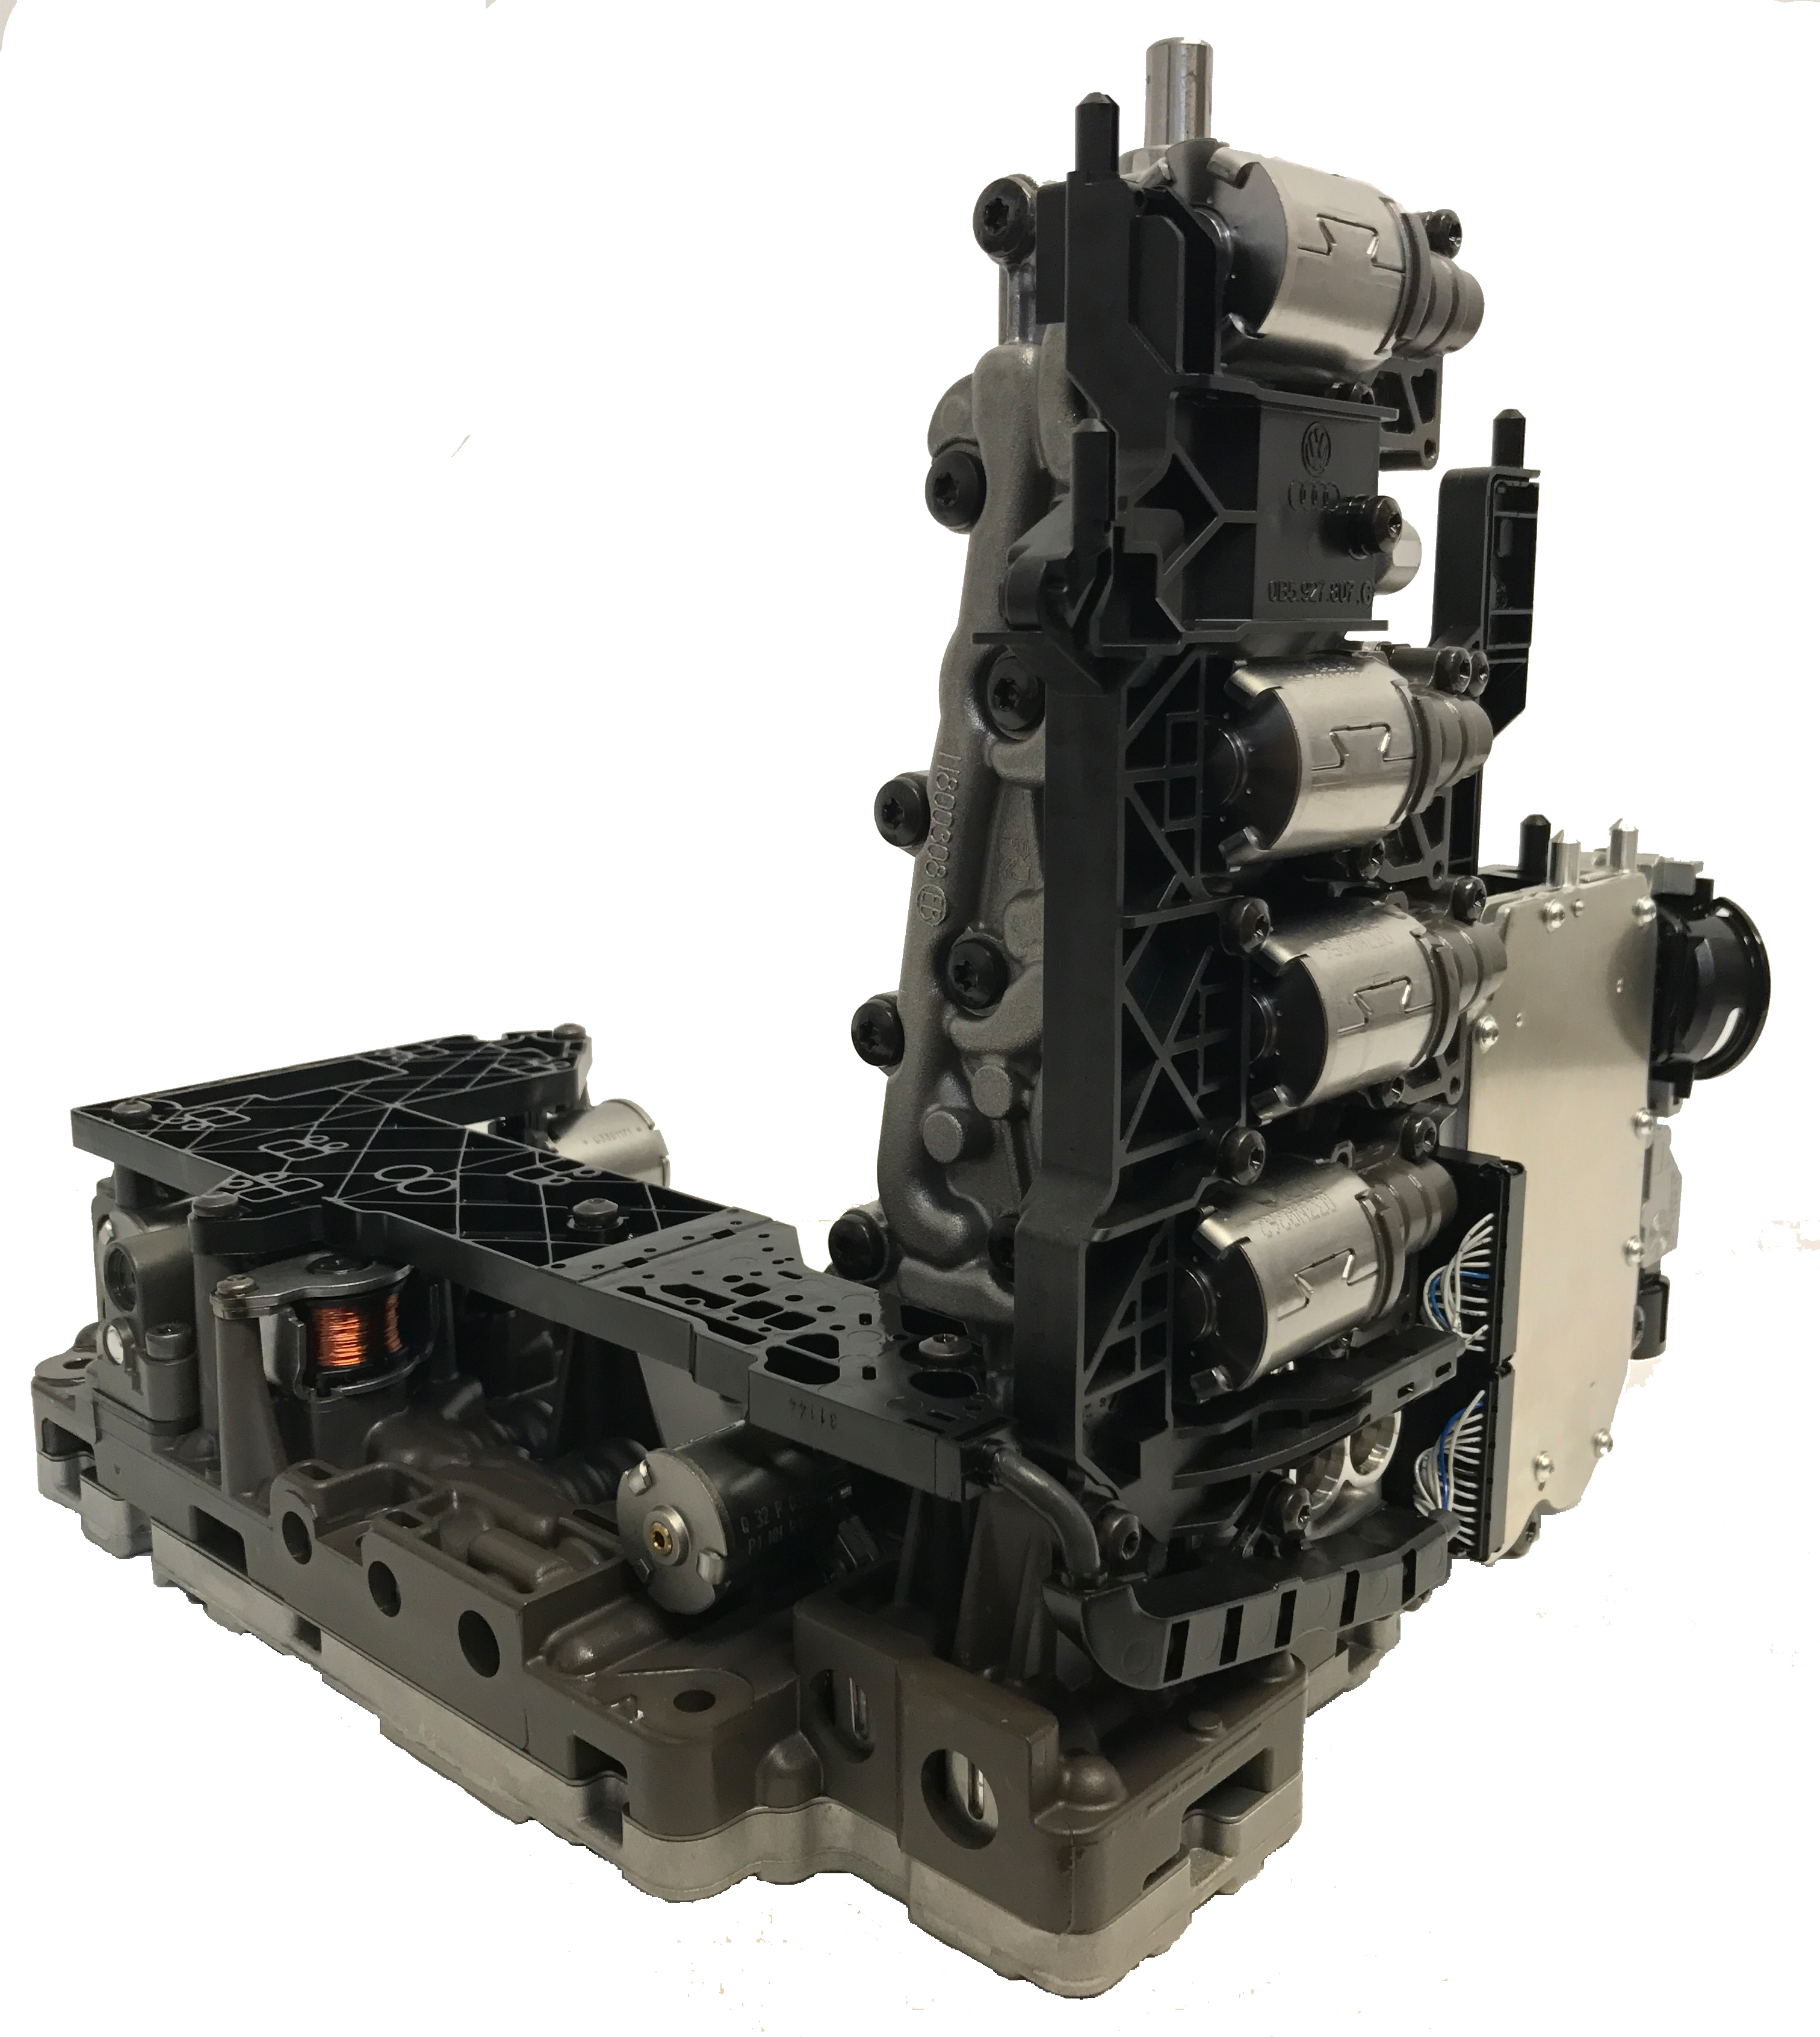 7_SPEED_S-TRONIC_AUTOMATIC_GEARBOXES - new MILTA Technology